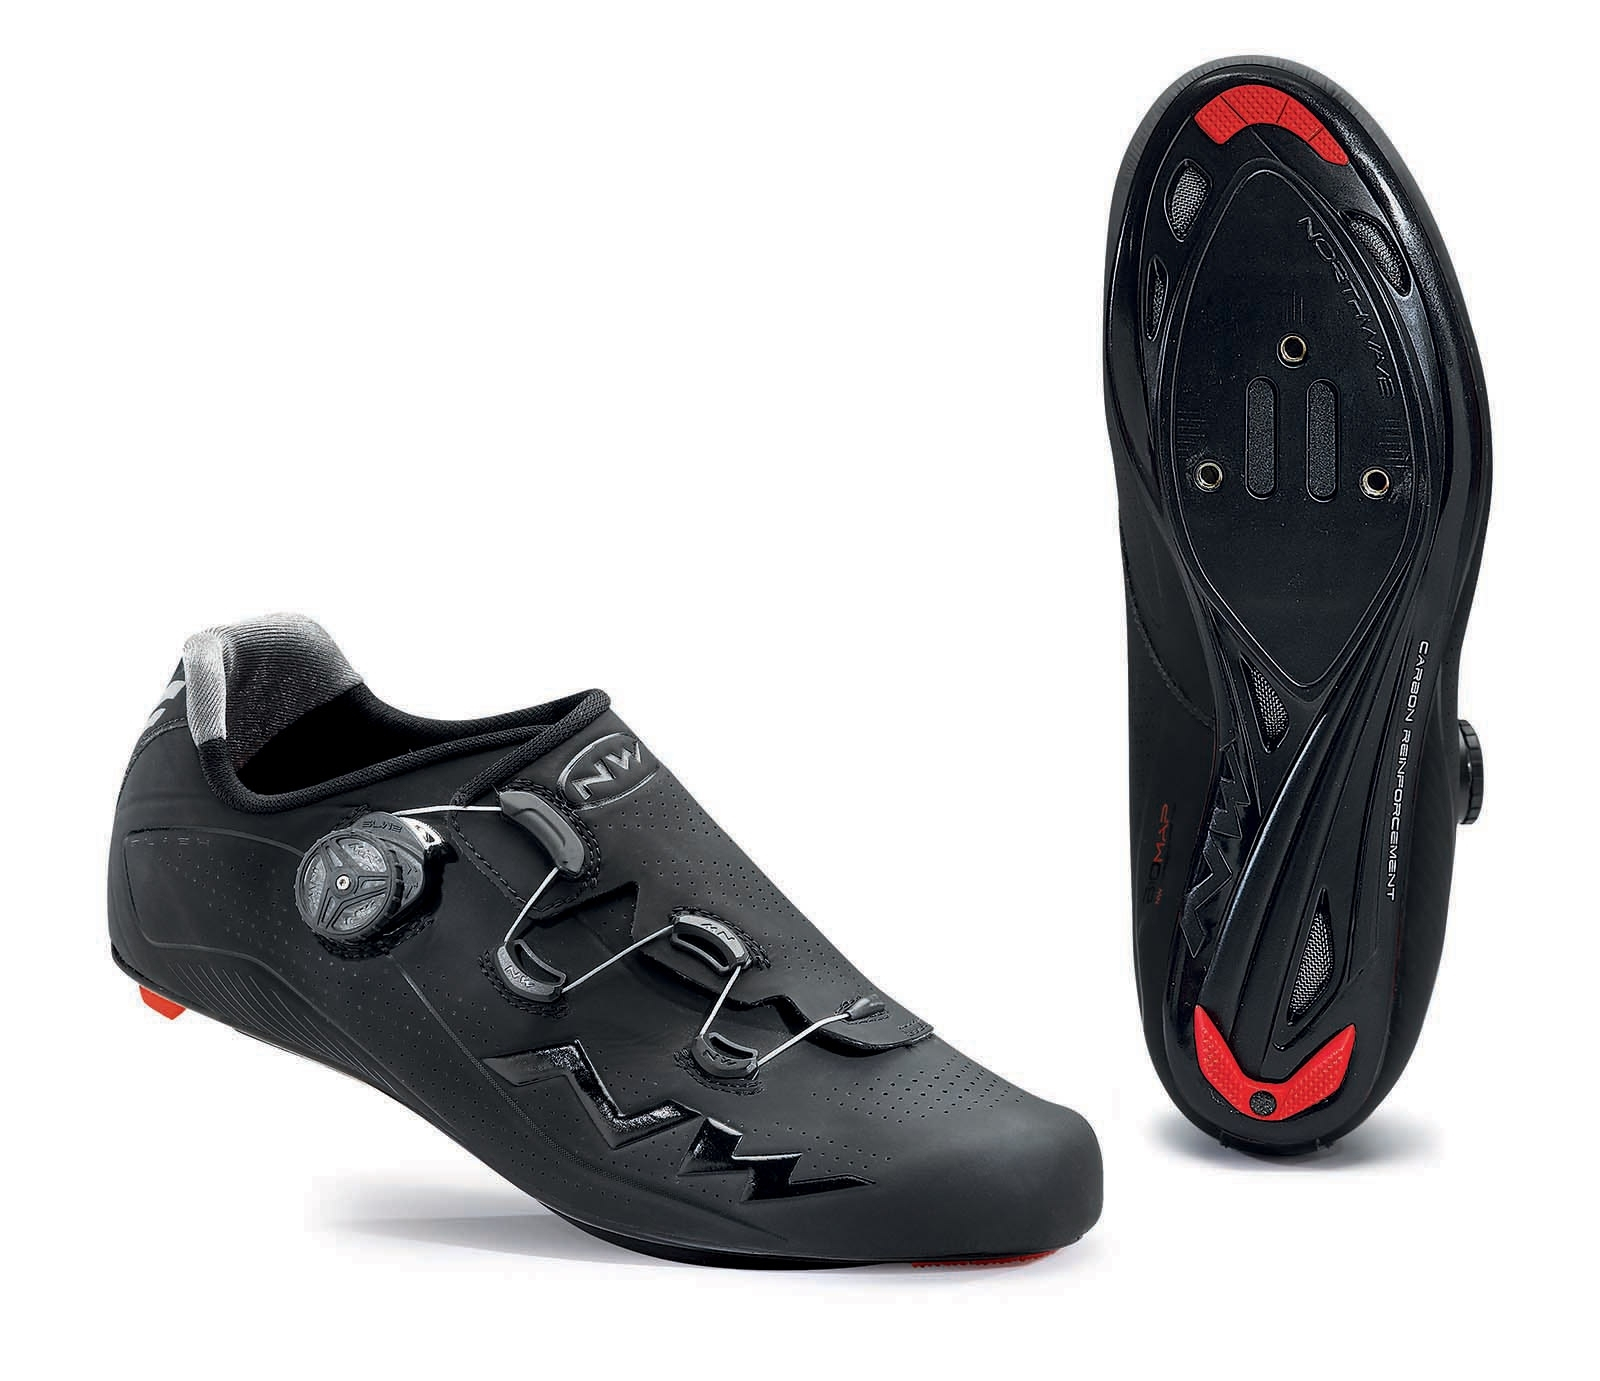 NORTHWAVE Man road cycling shoes FLASH black